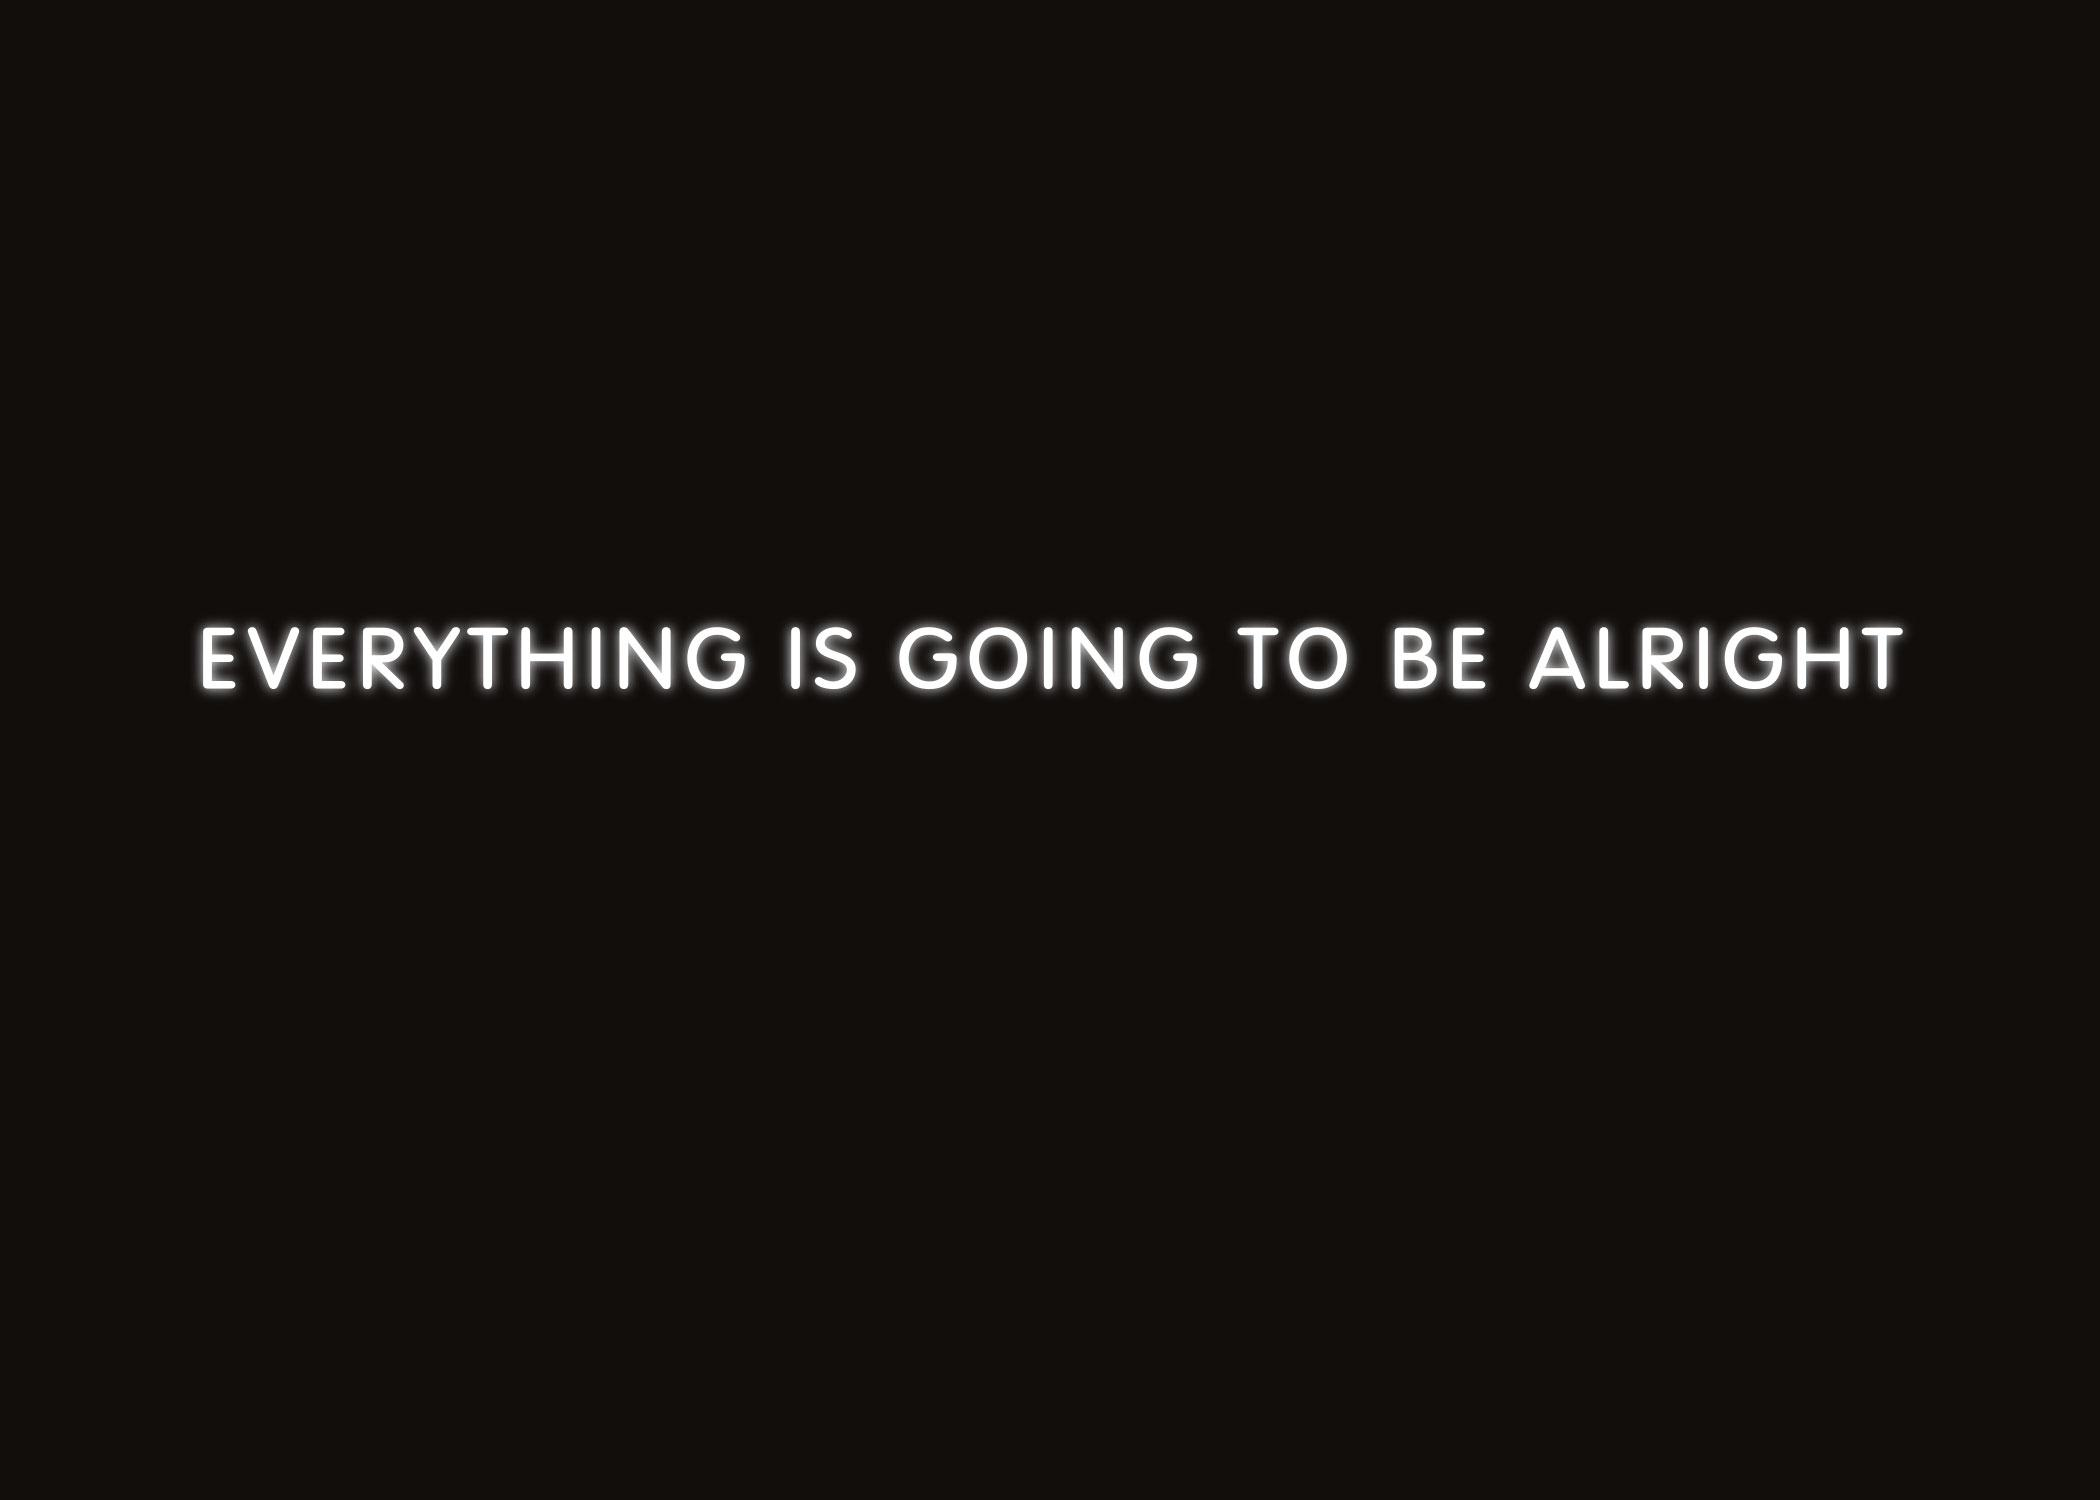 Everything Is Going to Be Alright: 11th Annual MOCAD Gala + Art Auction. Everything Is Going to Be Alright: 11th Annual MOCAD Gala + Art Auction